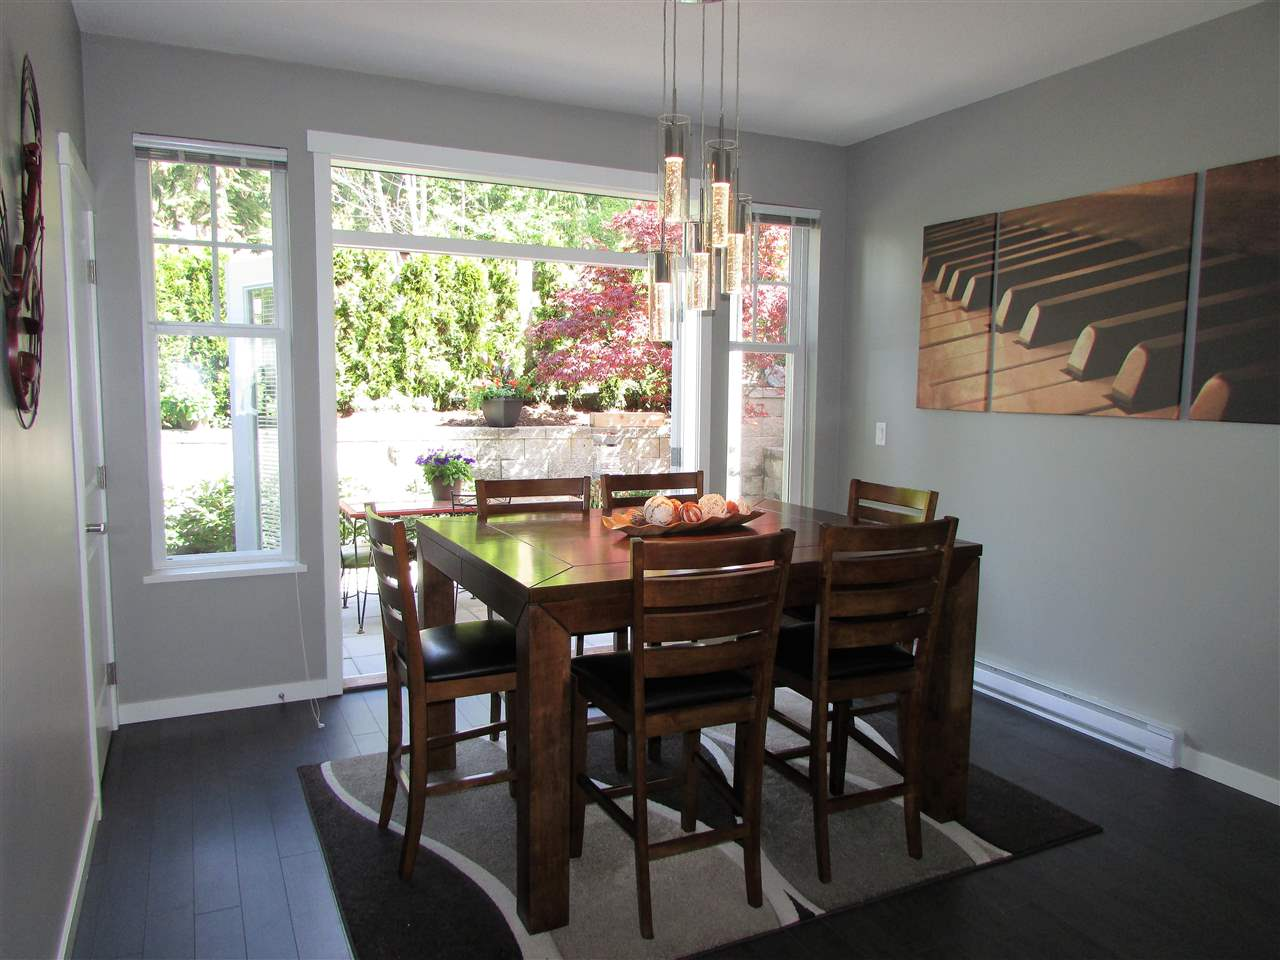 "Photo 4: 10 3470 HIGHLAND Drive in Coquitlam: Burke Mountain Townhouse for sale in ""BRIDLEWOOD"" : MLS® # R2164105"